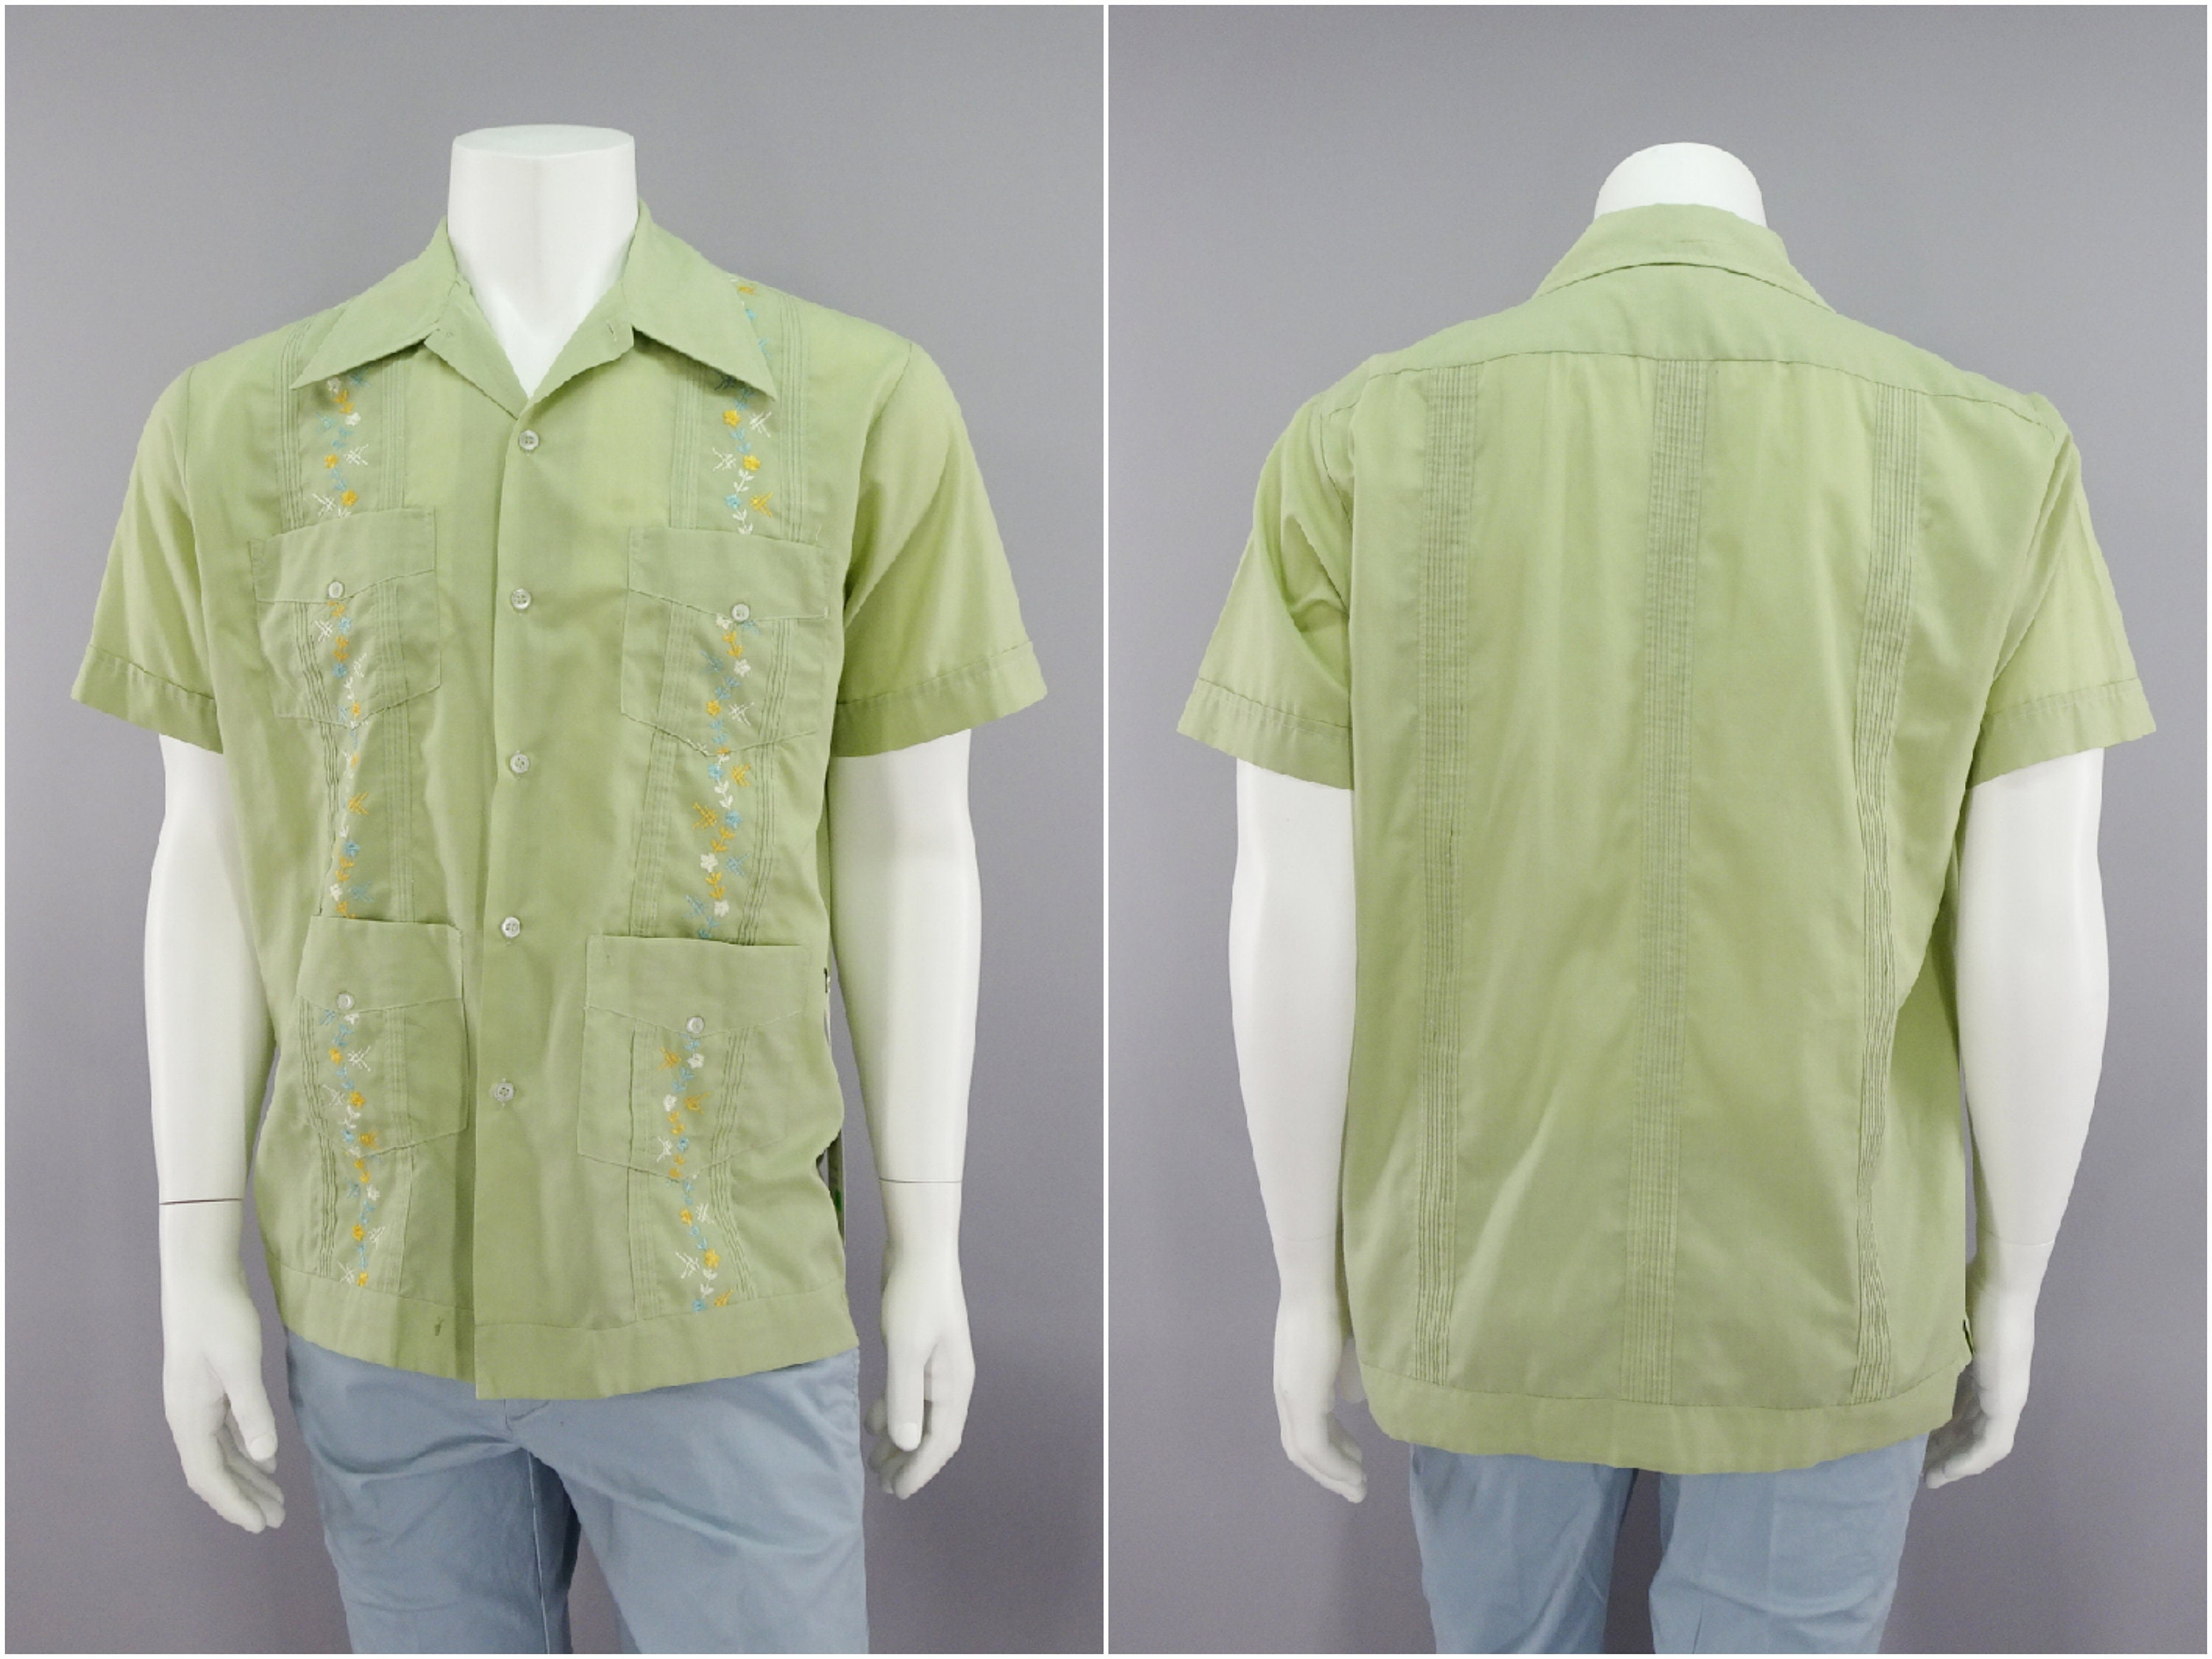 1960s – 70s Men's Ties | Skinny Ties, Slim Ties 1960S Vintage Green Guayaberas Shirt Tiki Lounge Wear Embroidered Floral Guayabera Style Short Sleeve Casual in Mens Size Large 44 $0.00 AT vintagedancer.com